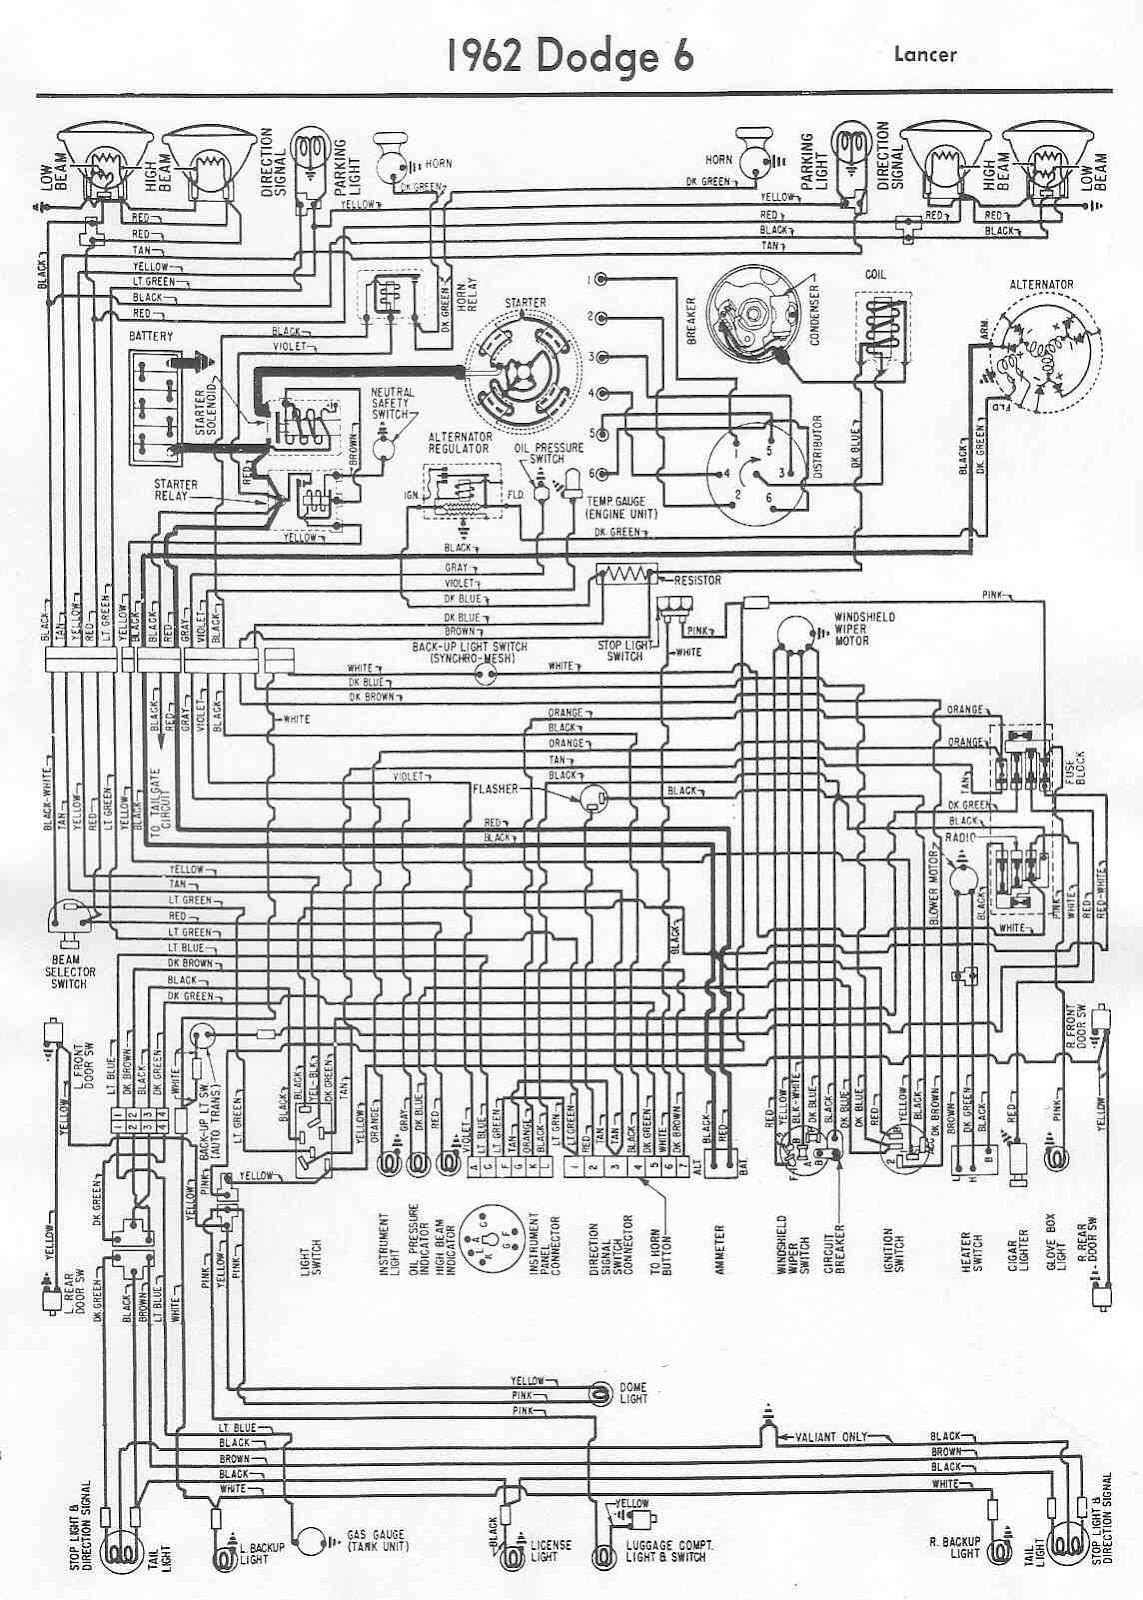 dodge lancer 1962 complete electrical wiring diagram all. Black Bedroom Furniture Sets. Home Design Ideas